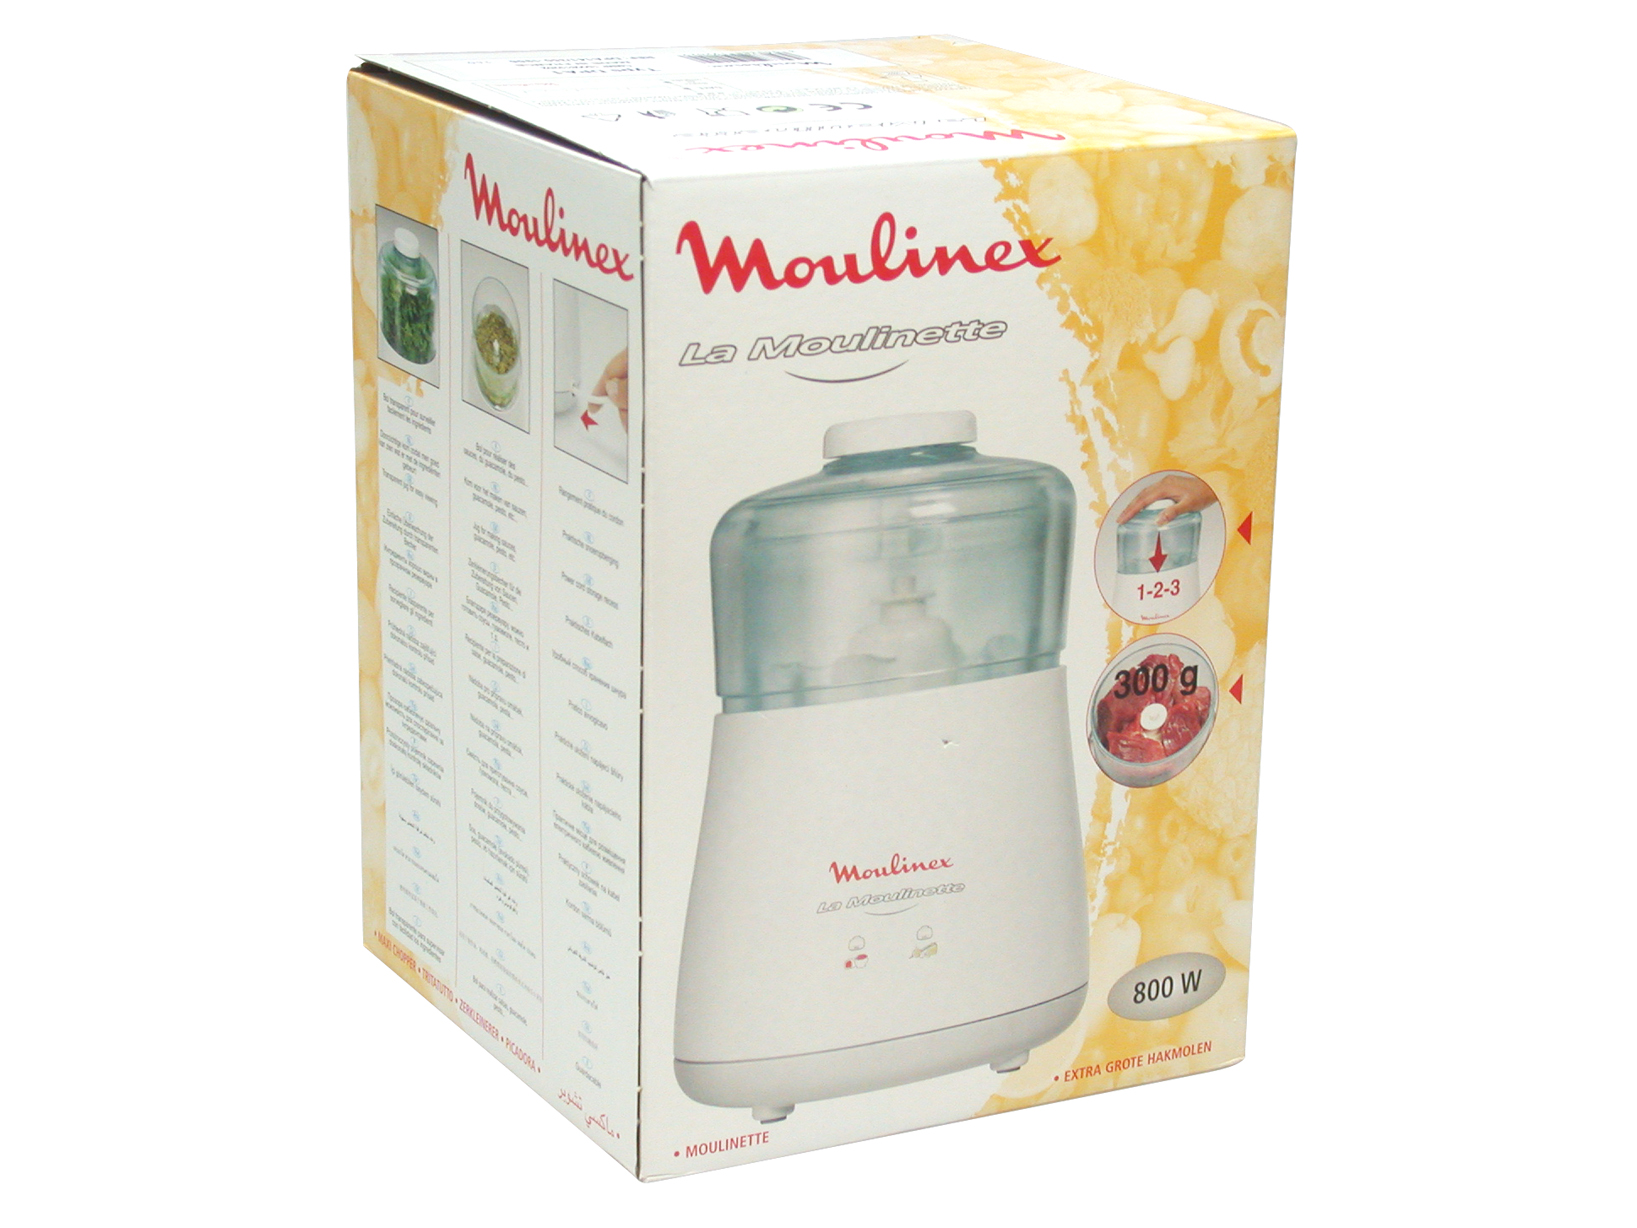 MOULINEX Electric chopper roping Small kitchen appliances